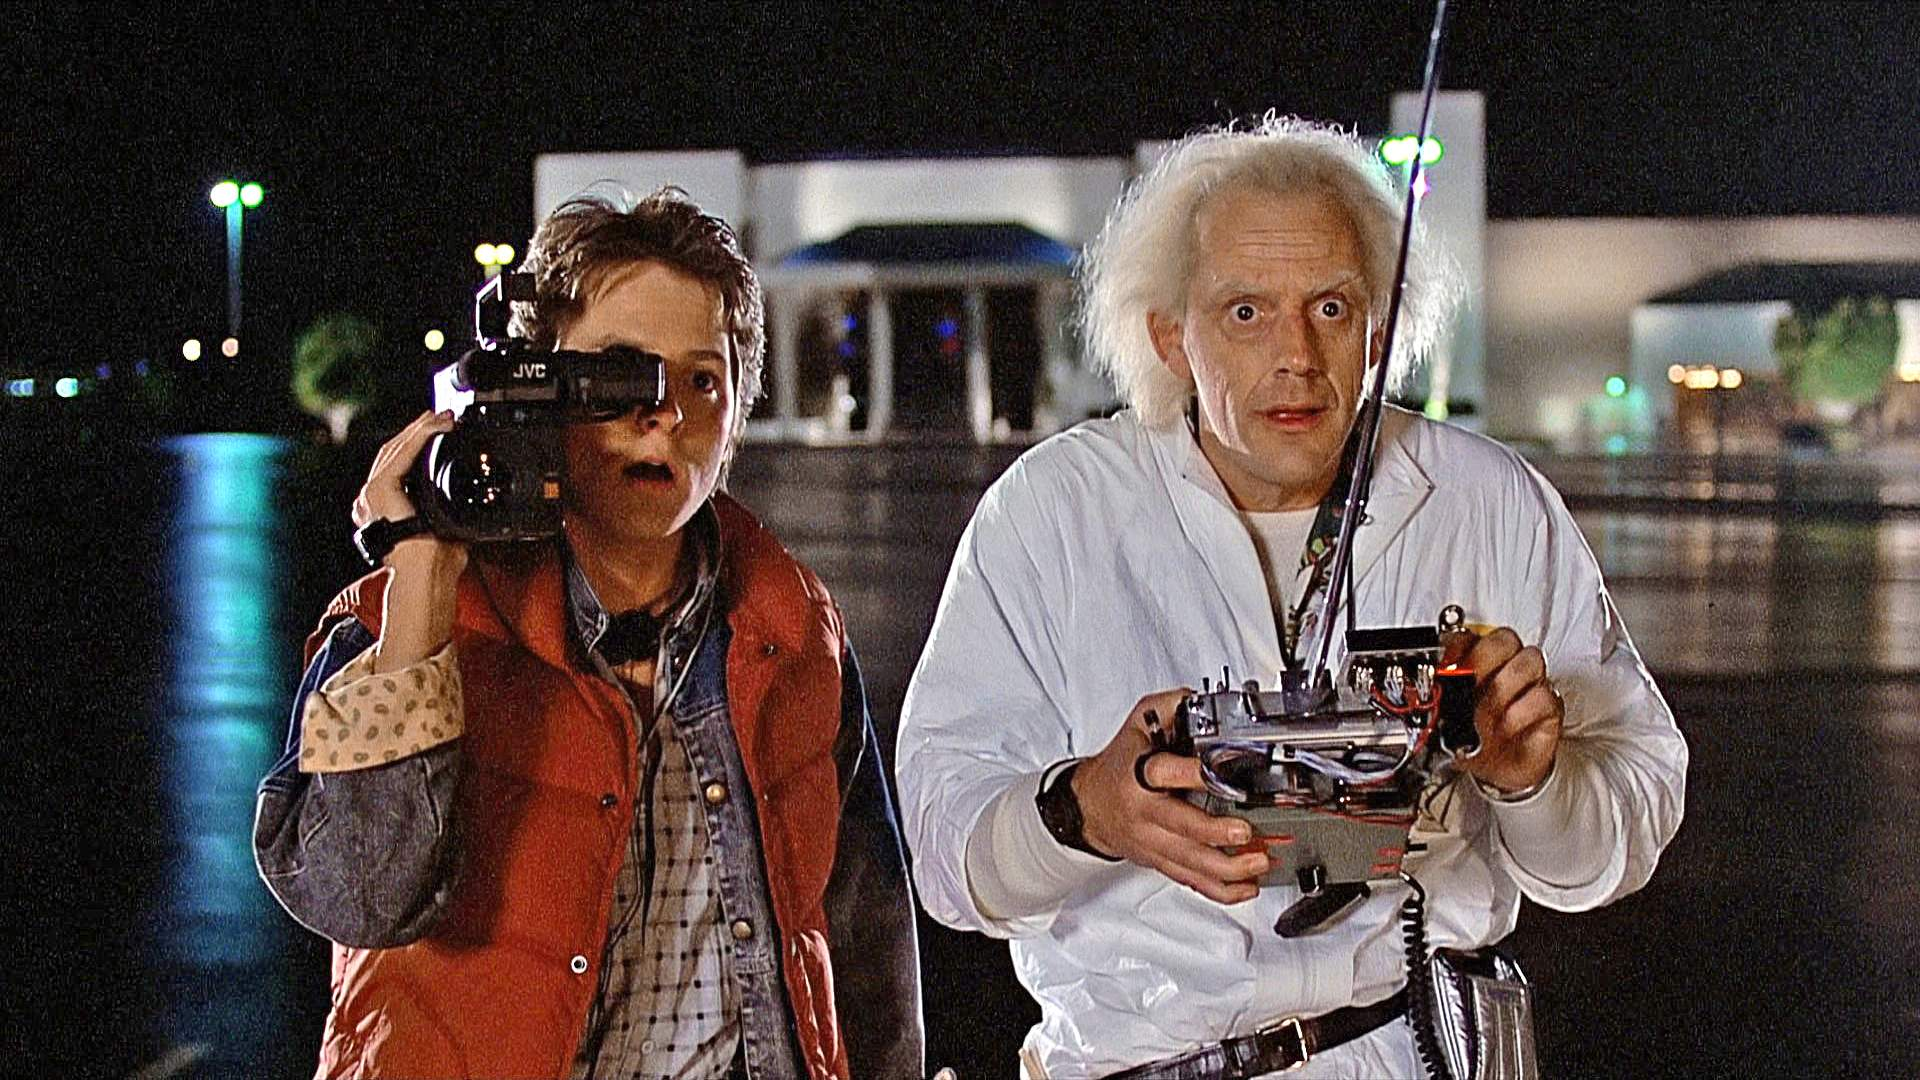 'Back to the Future' Trilogy 35th Anniversary Screening